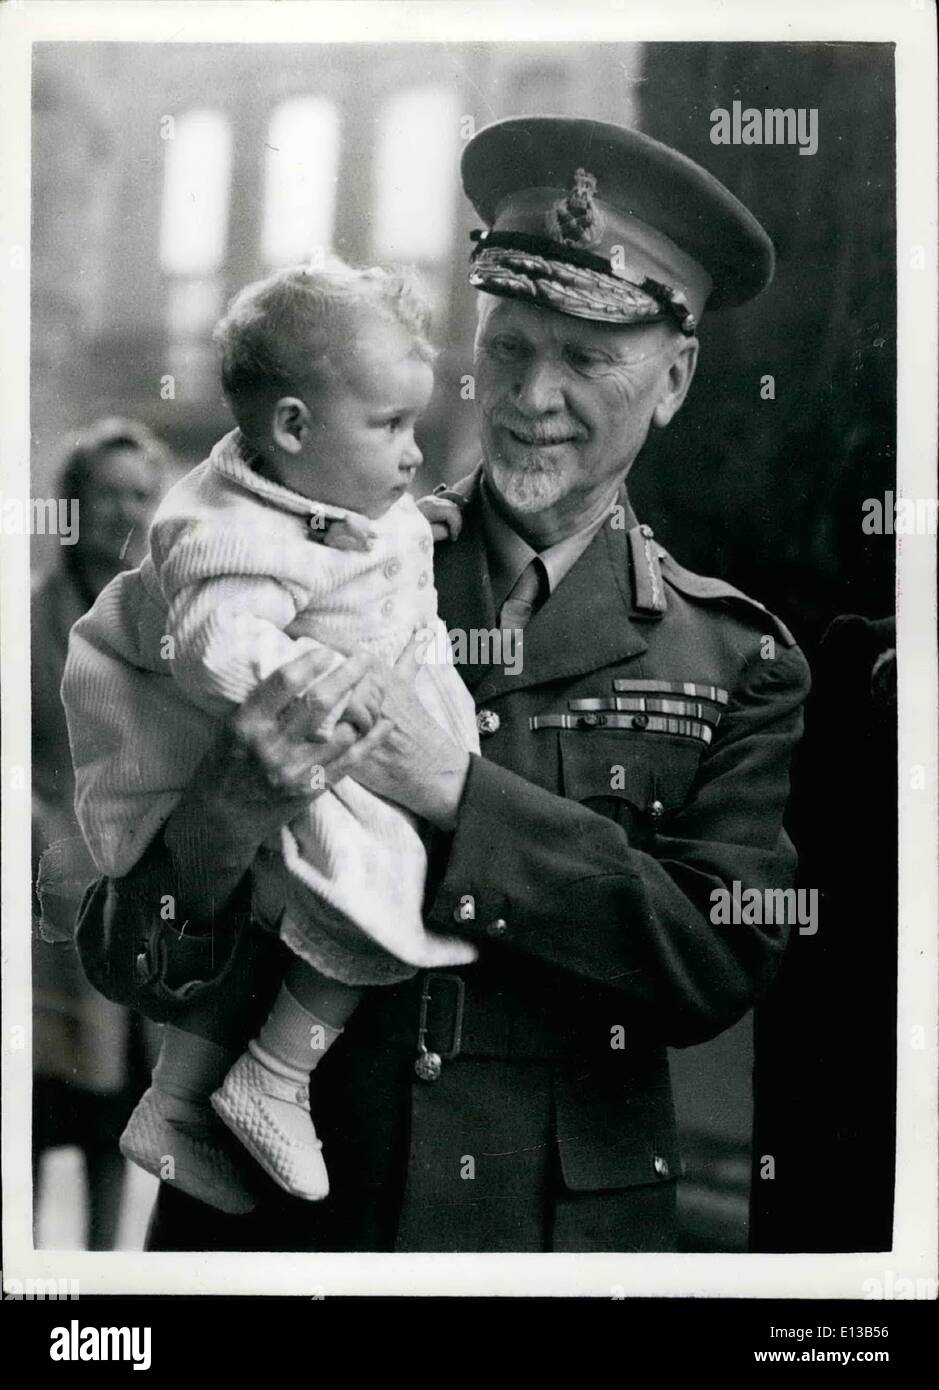 Feb. 29, 2012 - General Smuts becomes Godfather.: Gen. Smuts has become the Godfather of little Angela Petrina Huge, the daughter of Group Captain and Mrs. Peter H. Hugo. Hugo who is only 25, is a veteran of the Battle of Britain and a well known South African air ace.He helds the D.S.O. and D.F.C., with tow bars. He could not attend the ceremony which took plae at St. George's, Hanover Square - for he is now in the Mediterranean Theatre of War. Angela's mother, former Miss Angela Seeds, is a V..D. Nurse and comes from Anglesey, Wales - Stock Image